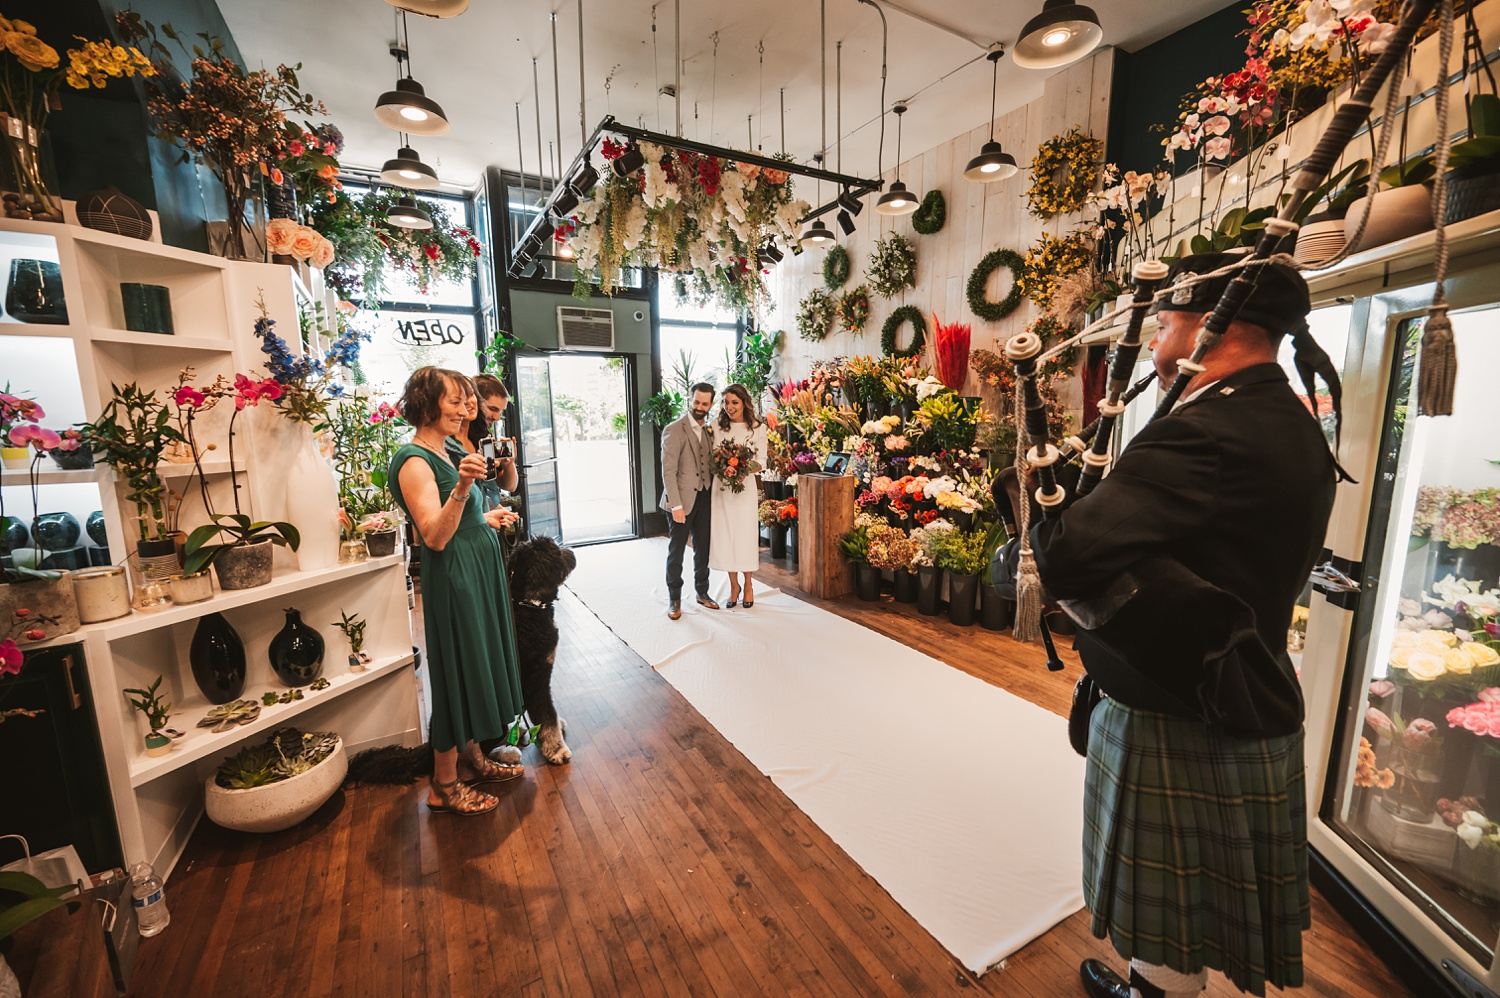 Sunrise Chicago Wedding - The Adamkovi, Steve's flower market ceremony, covid, zoom, bag piper